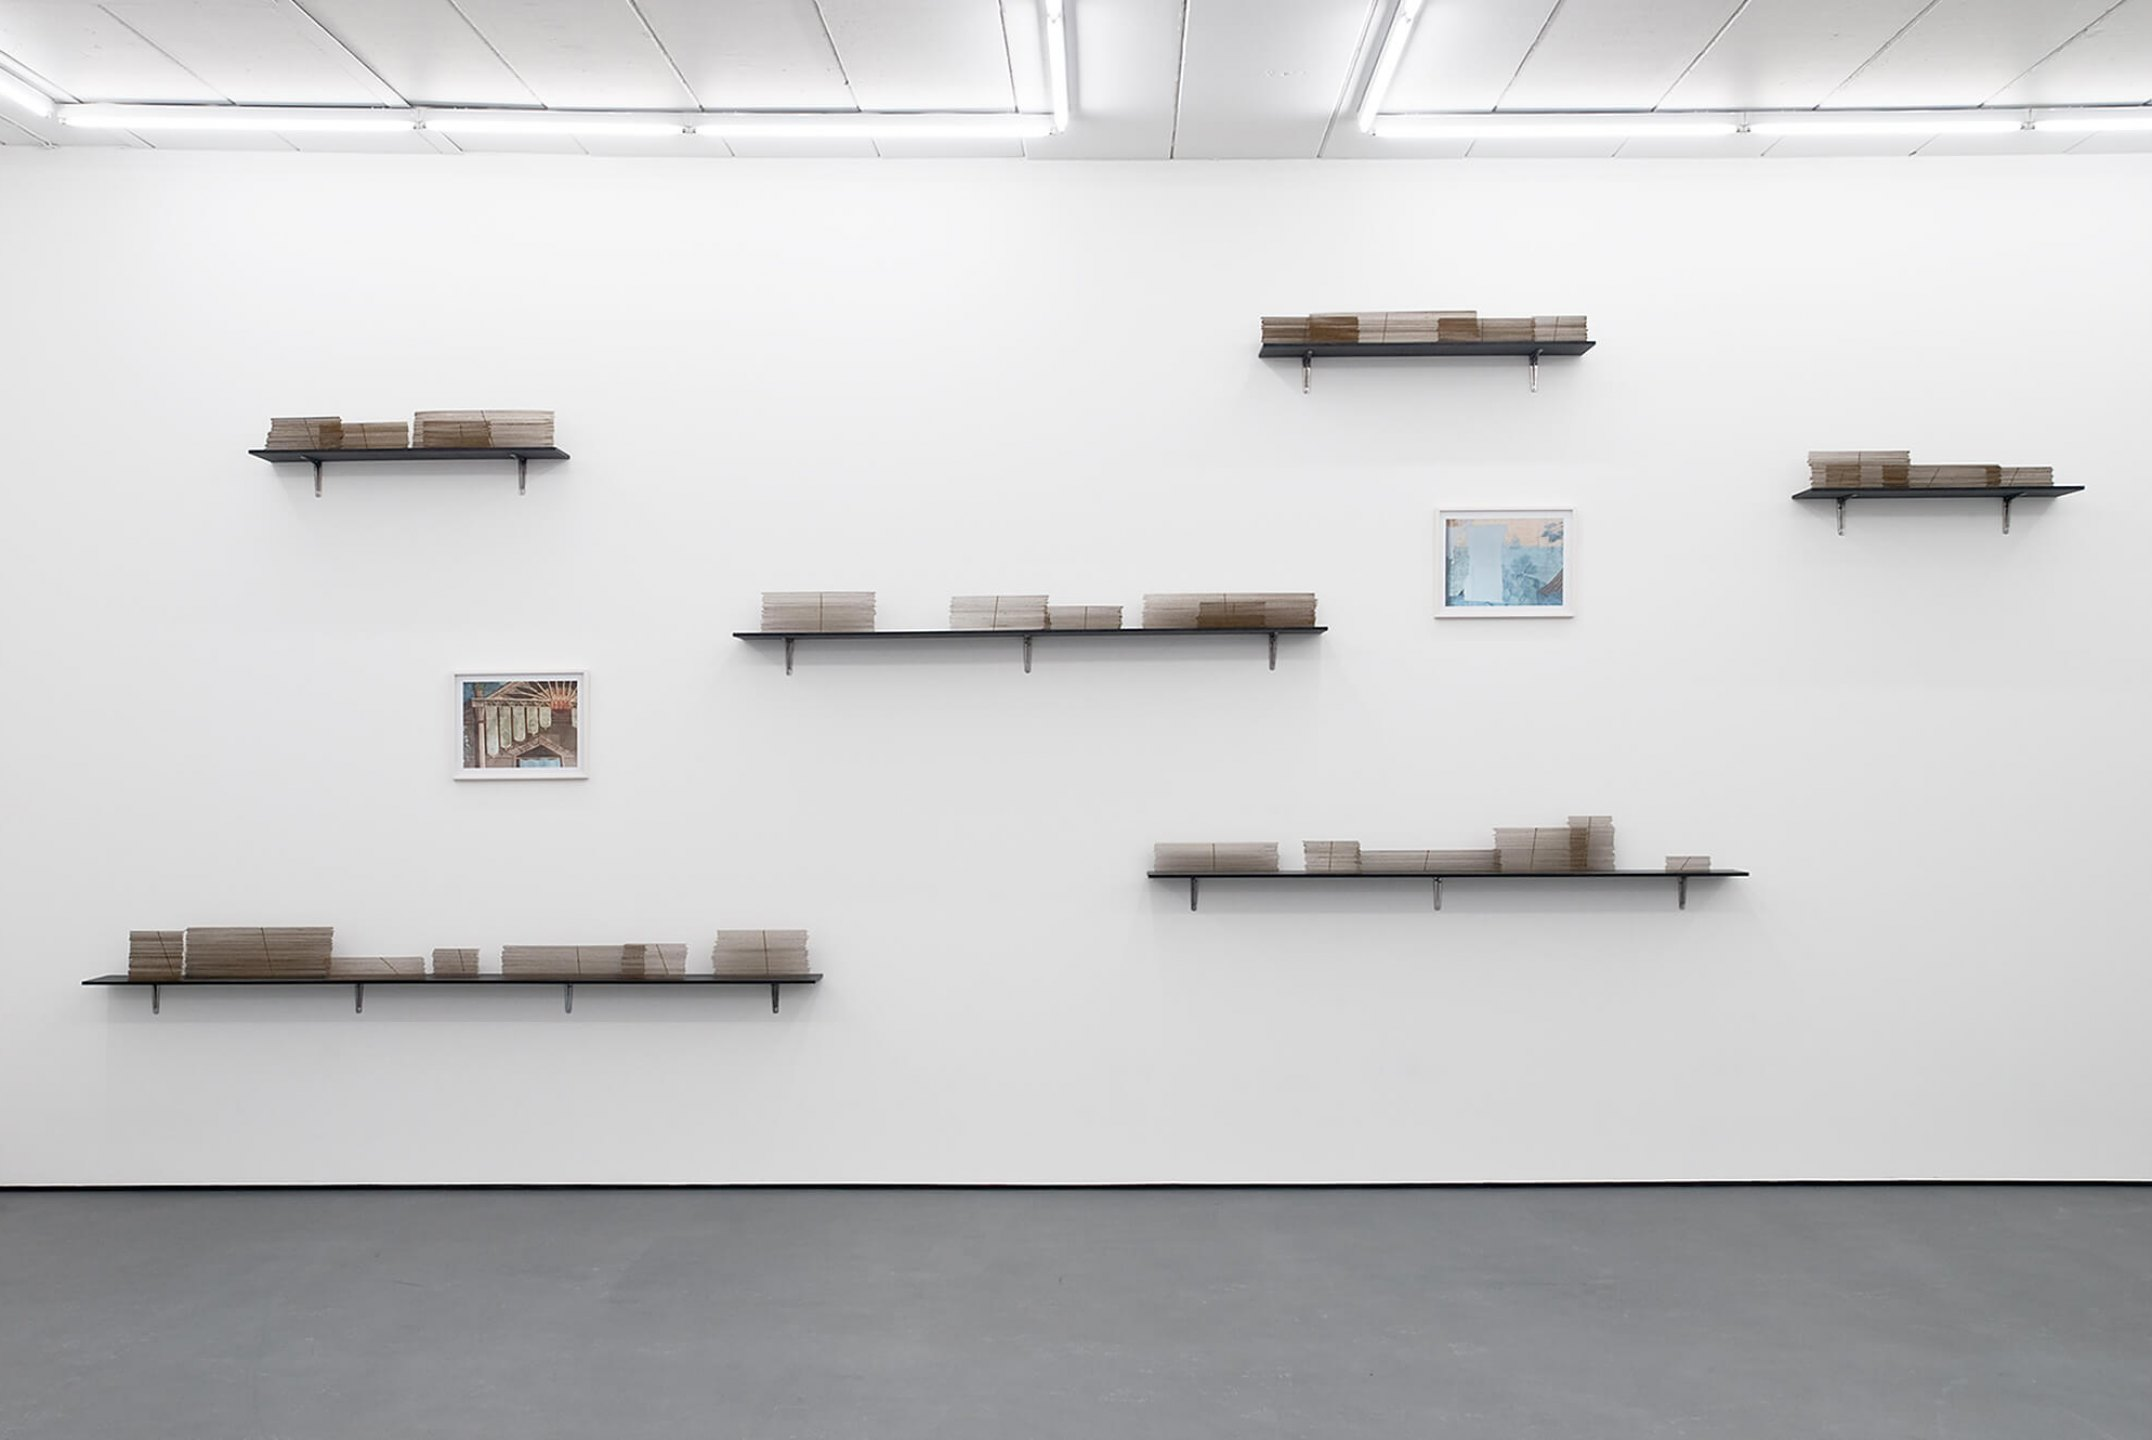 Runo Lagomarsino,<em>Las Casas is Not a Home</em>, 2008/2010, <em>Installation with</em>objects, sculpture, video, drawings prints and shelves, variable dimensions - Mendes Wood DM